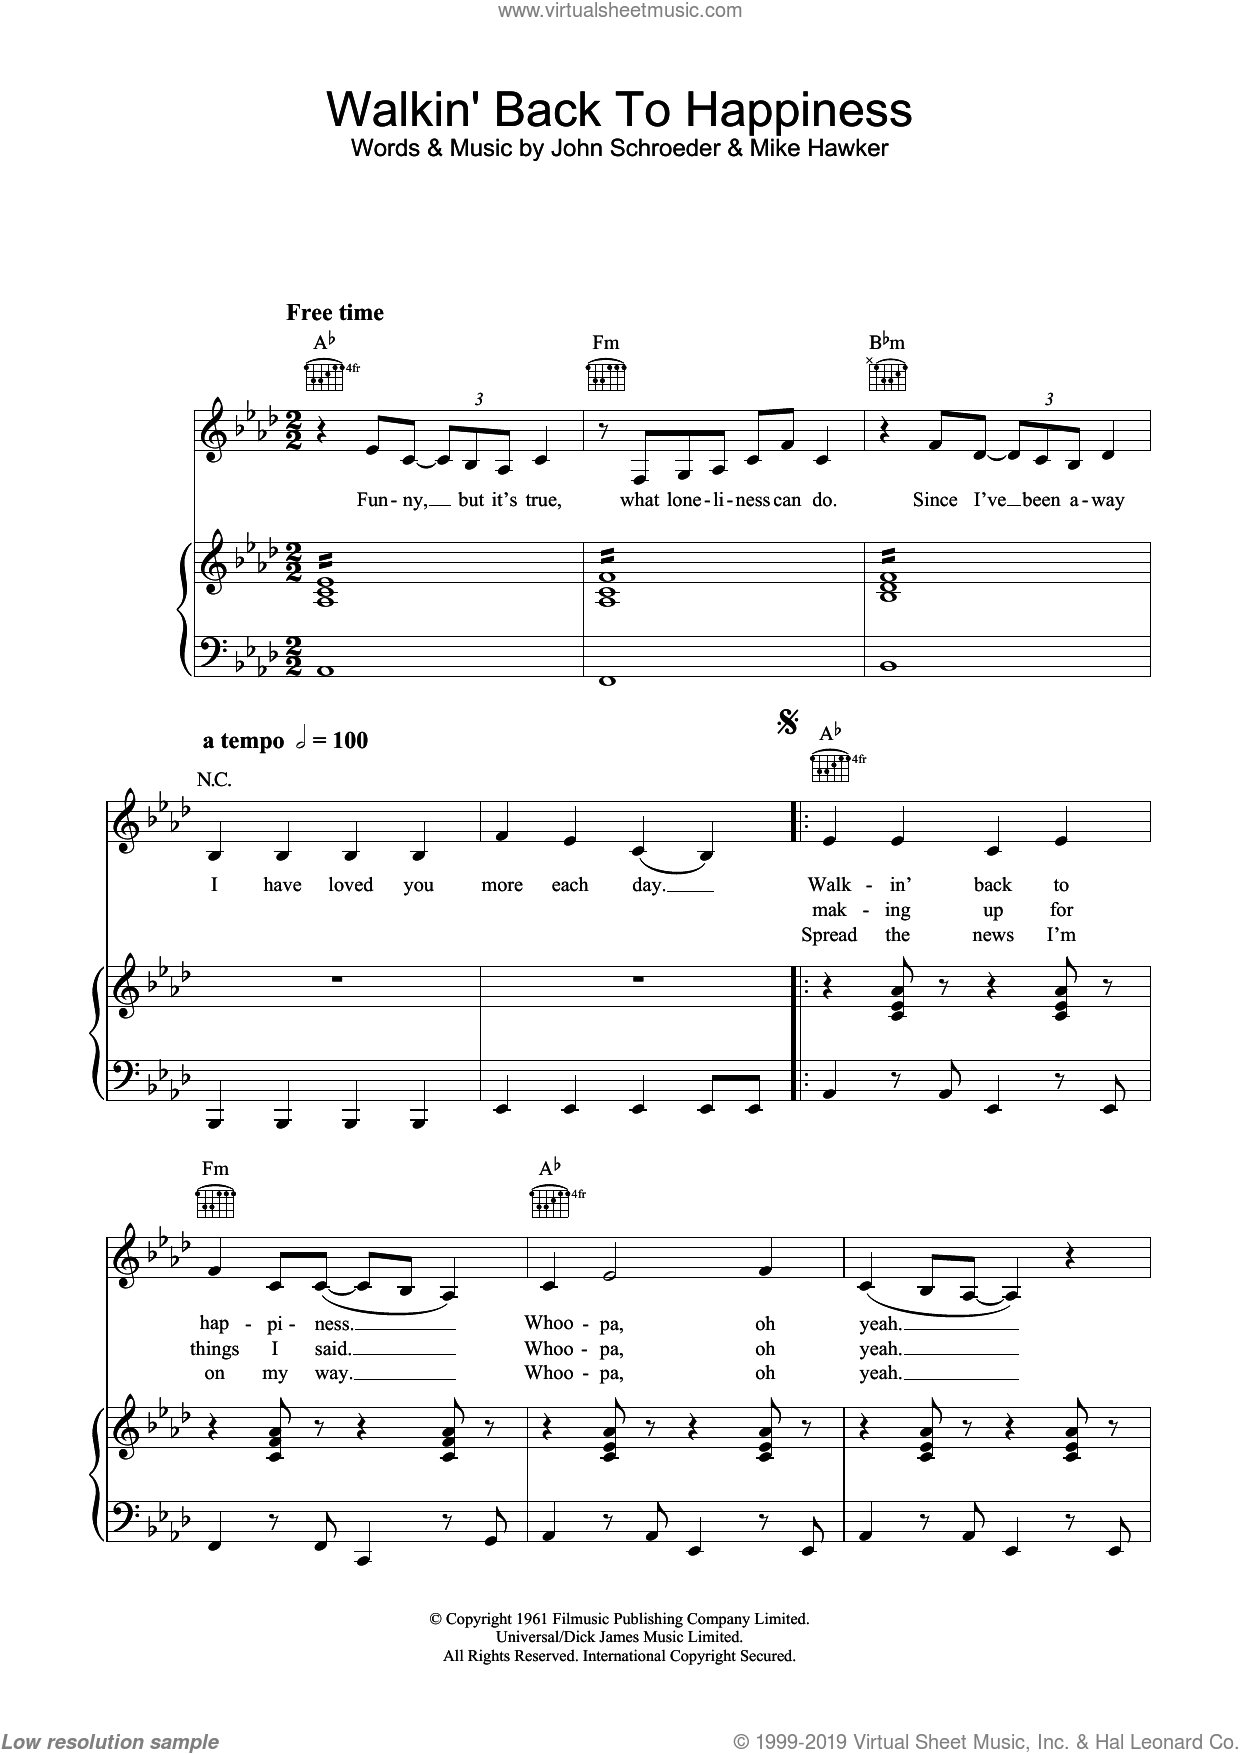 Walkin' Back To Happiness sheet music for voice, piano or guitar by Mike Hawker, Helen Shapiro and John Schroeder, intermediate skill level